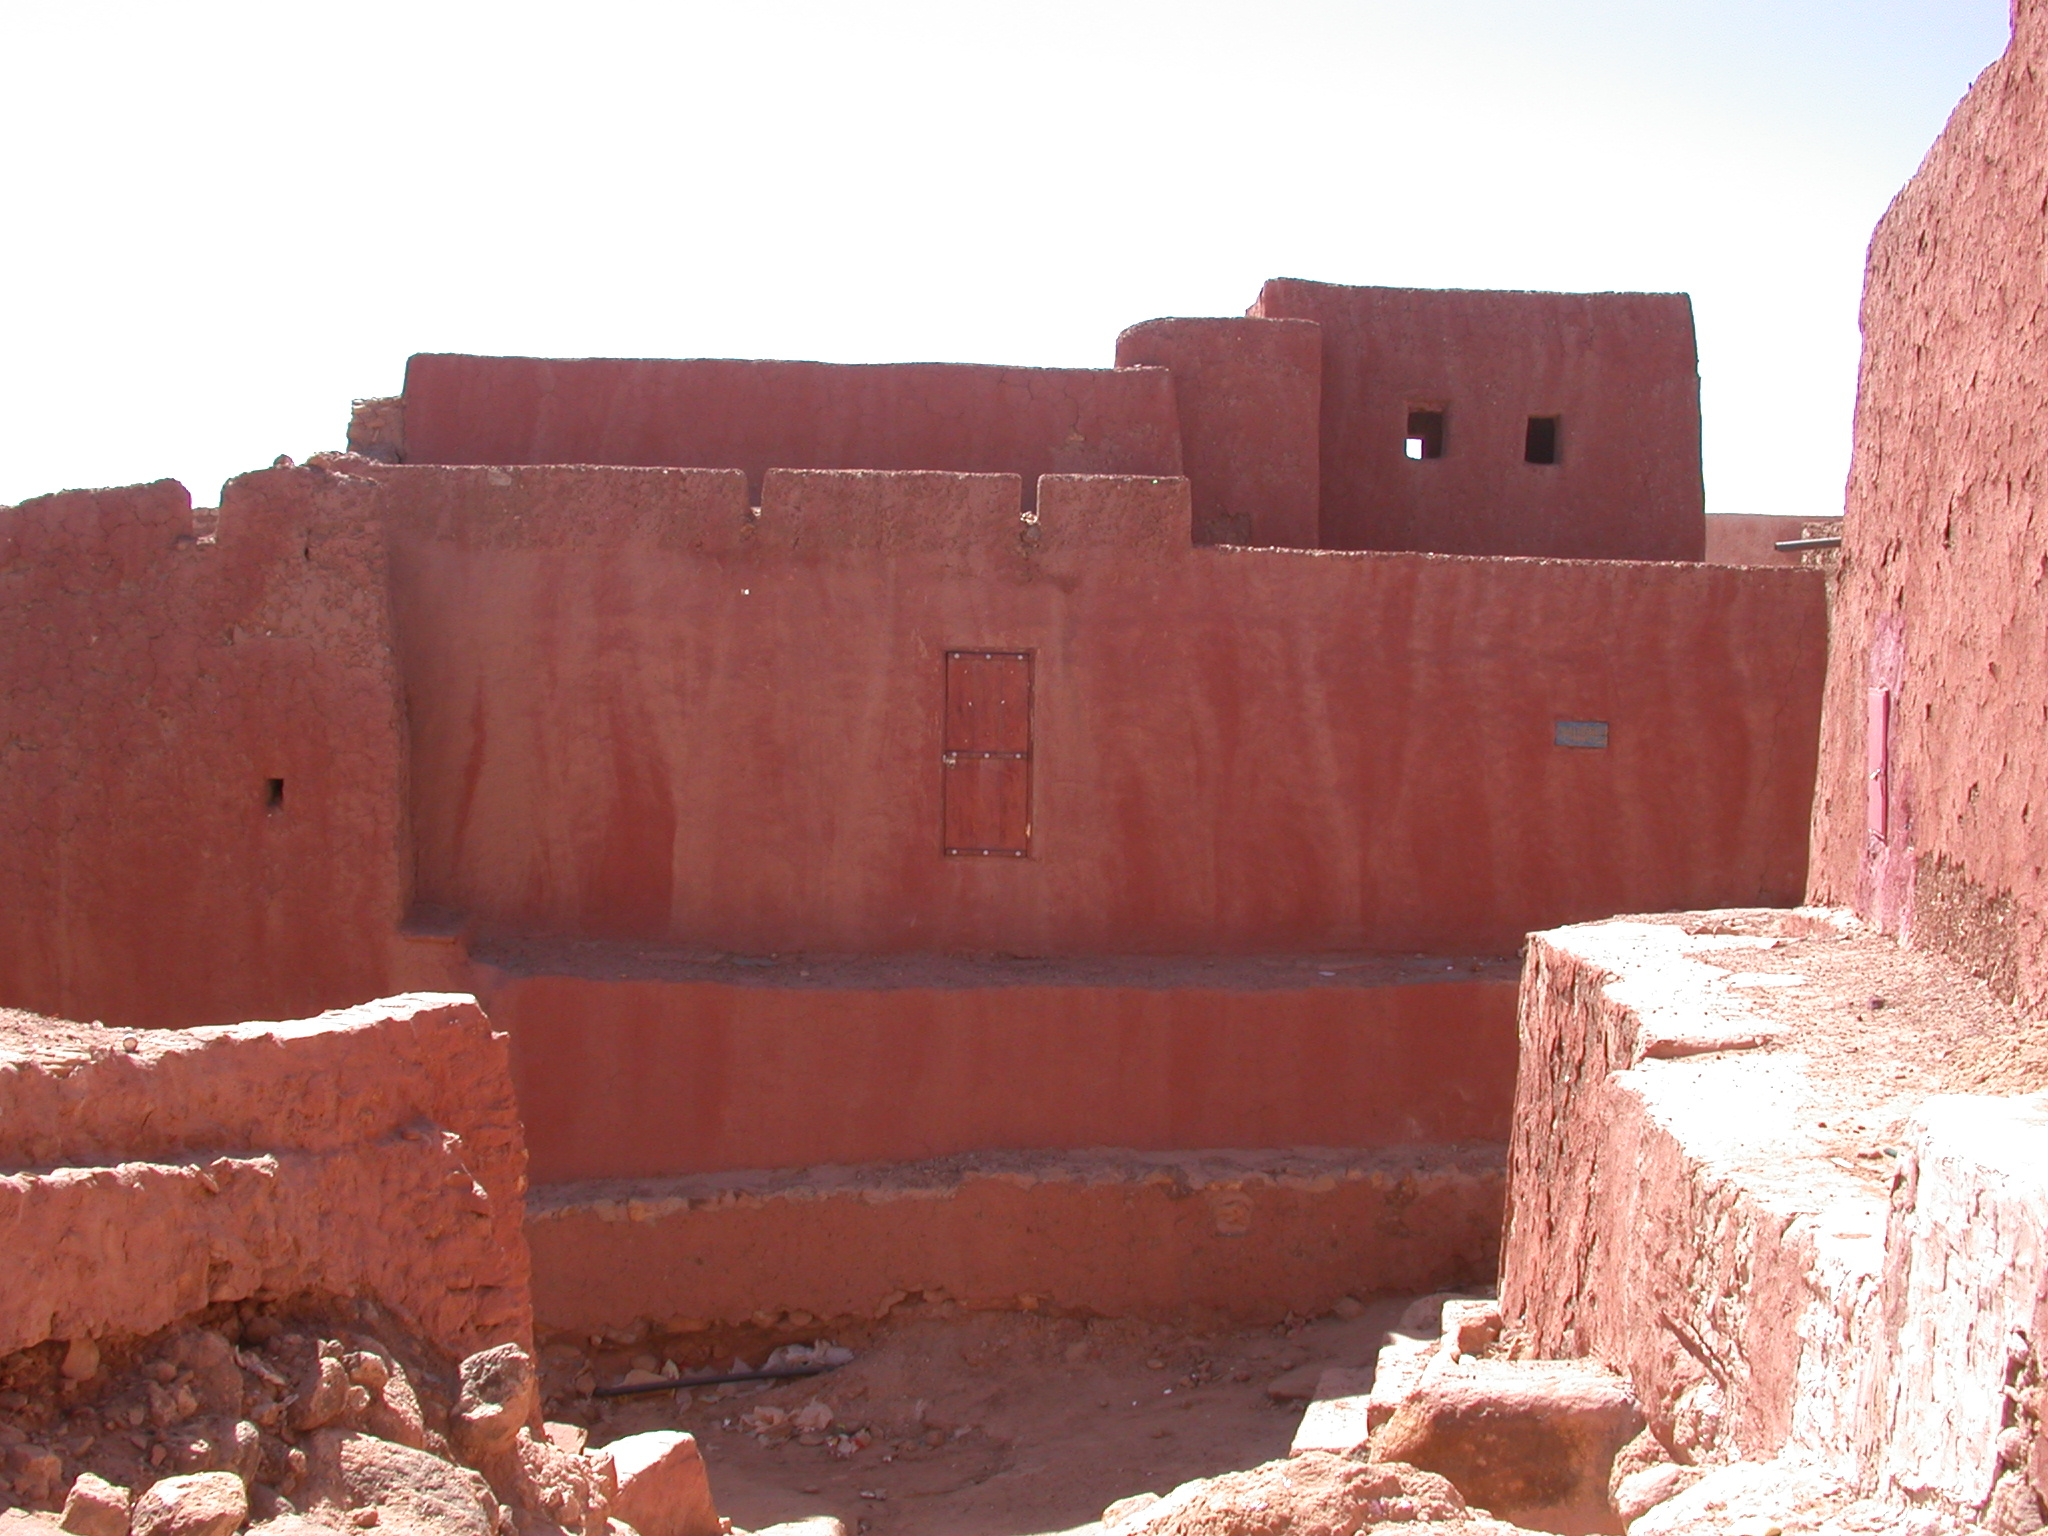 City View of Ancient City of Oulata, Mauritania